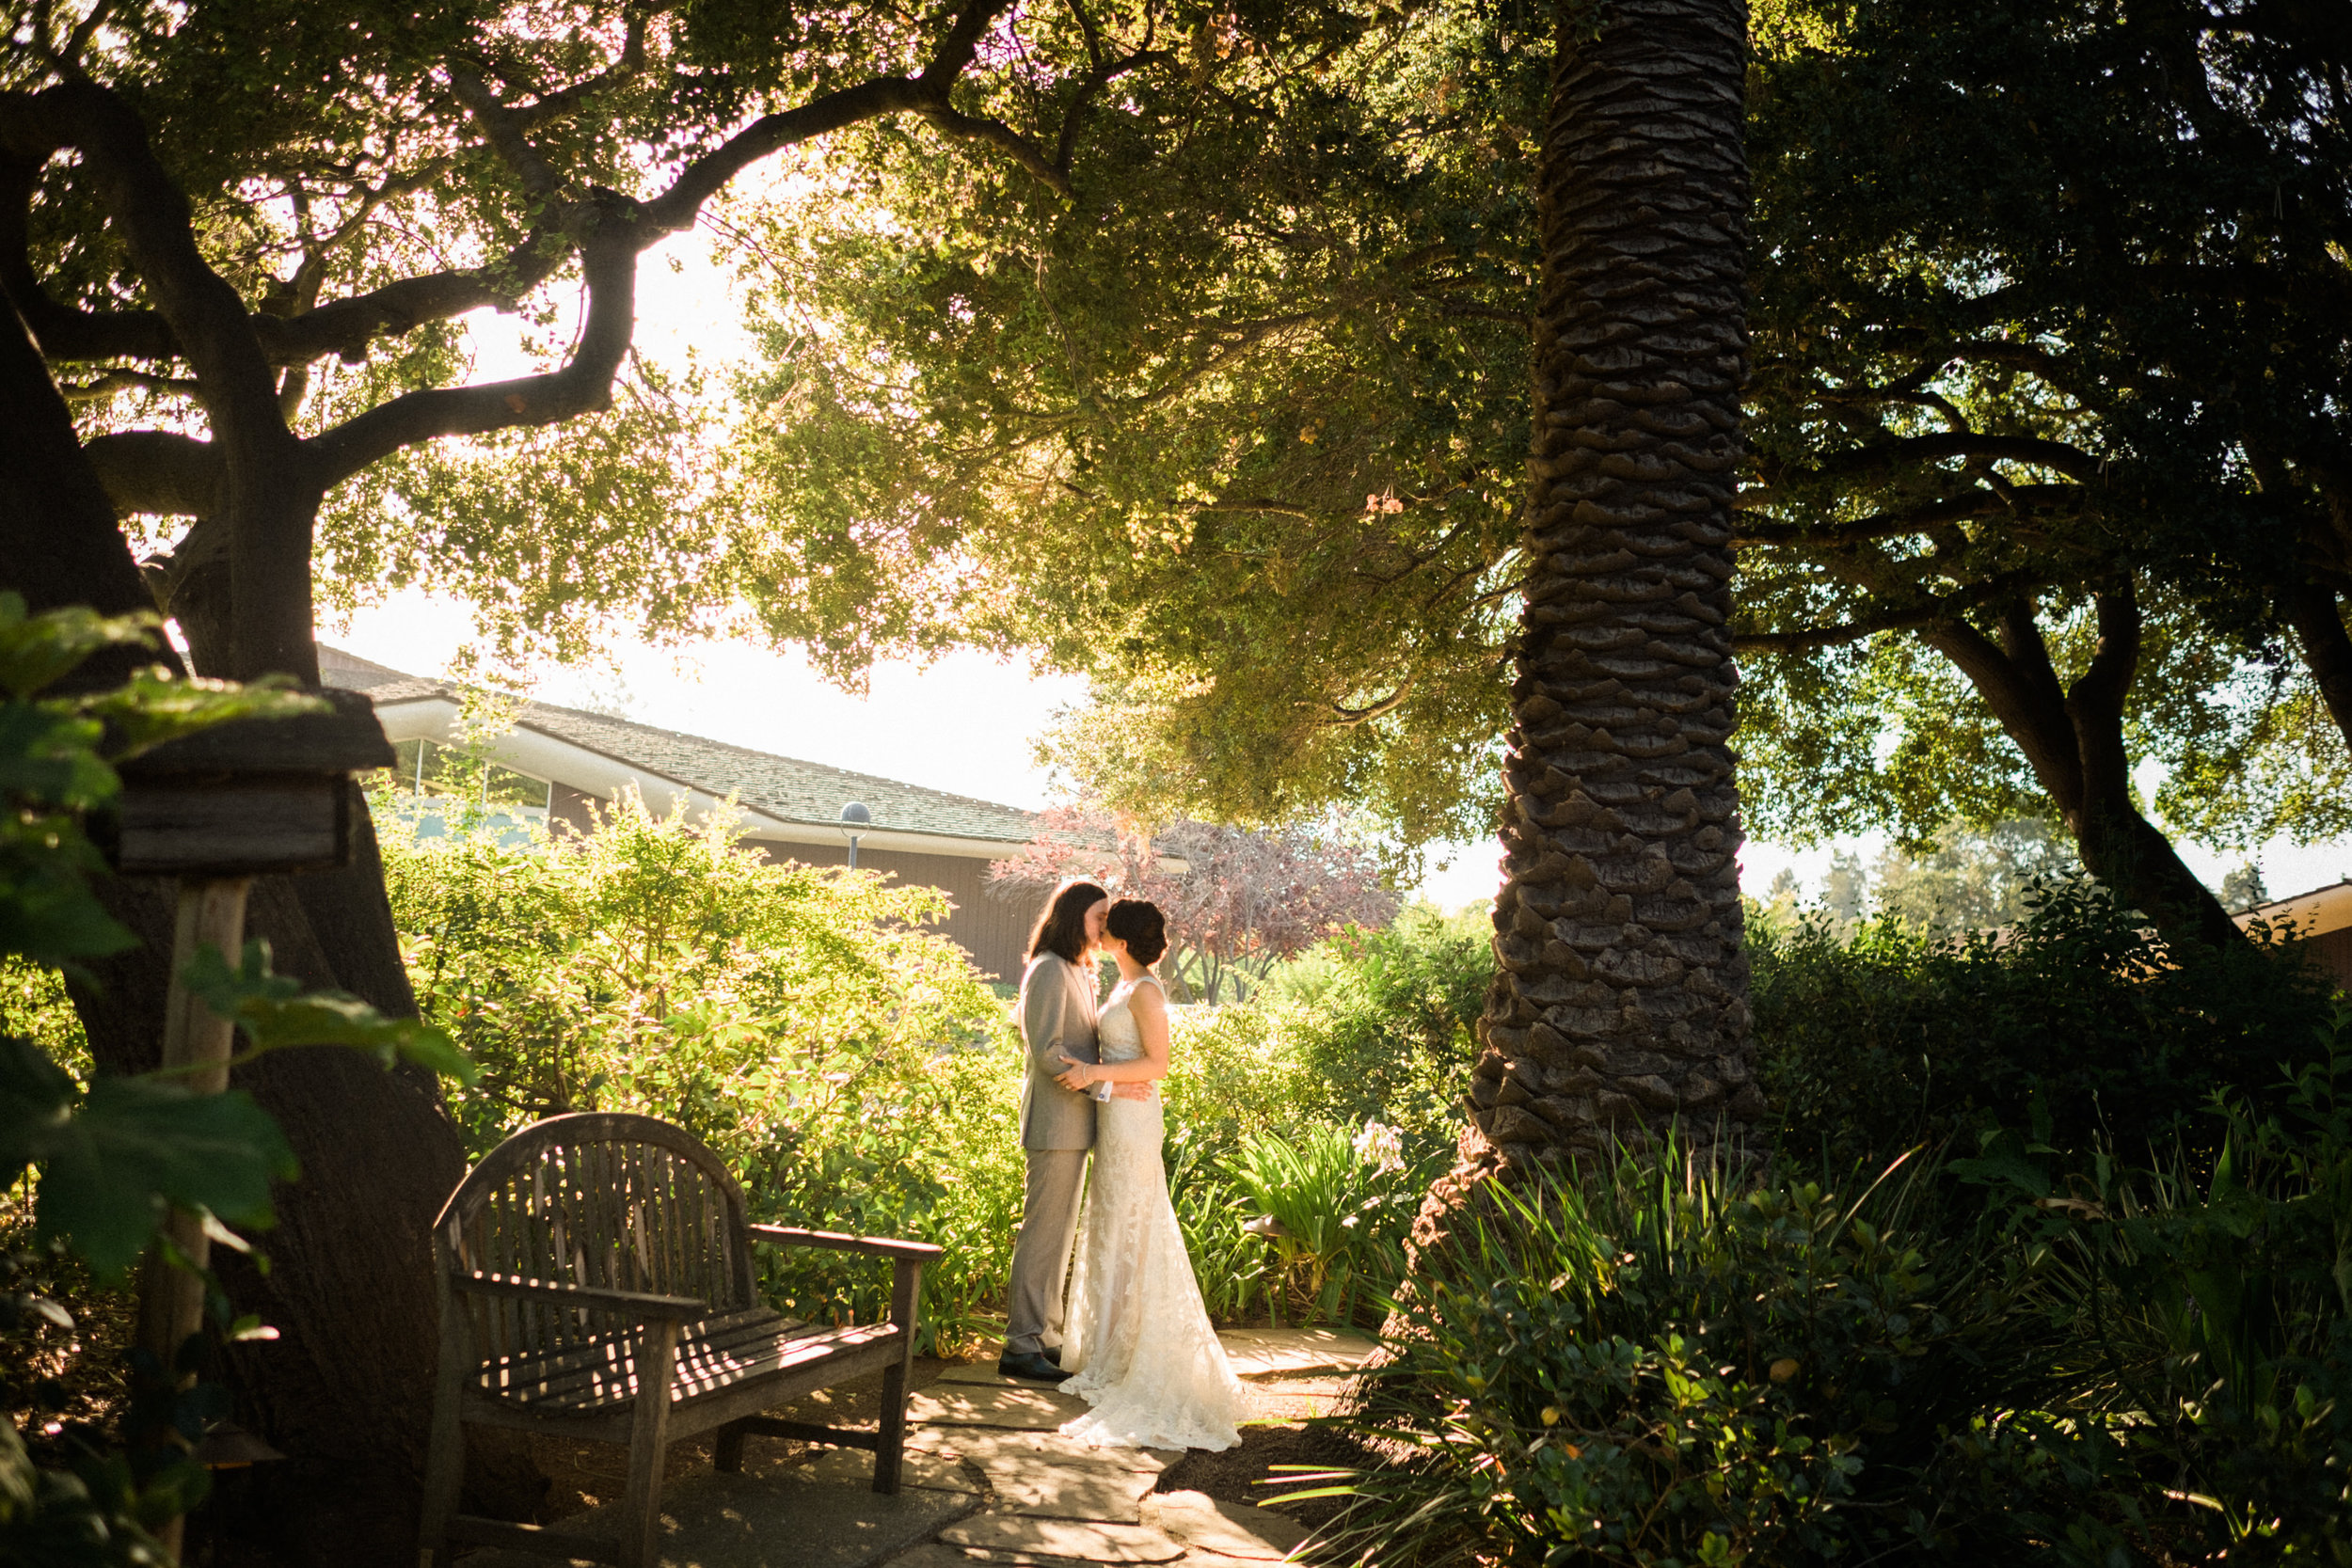 Los Altos HIstory Museum Wedding-53.jpg